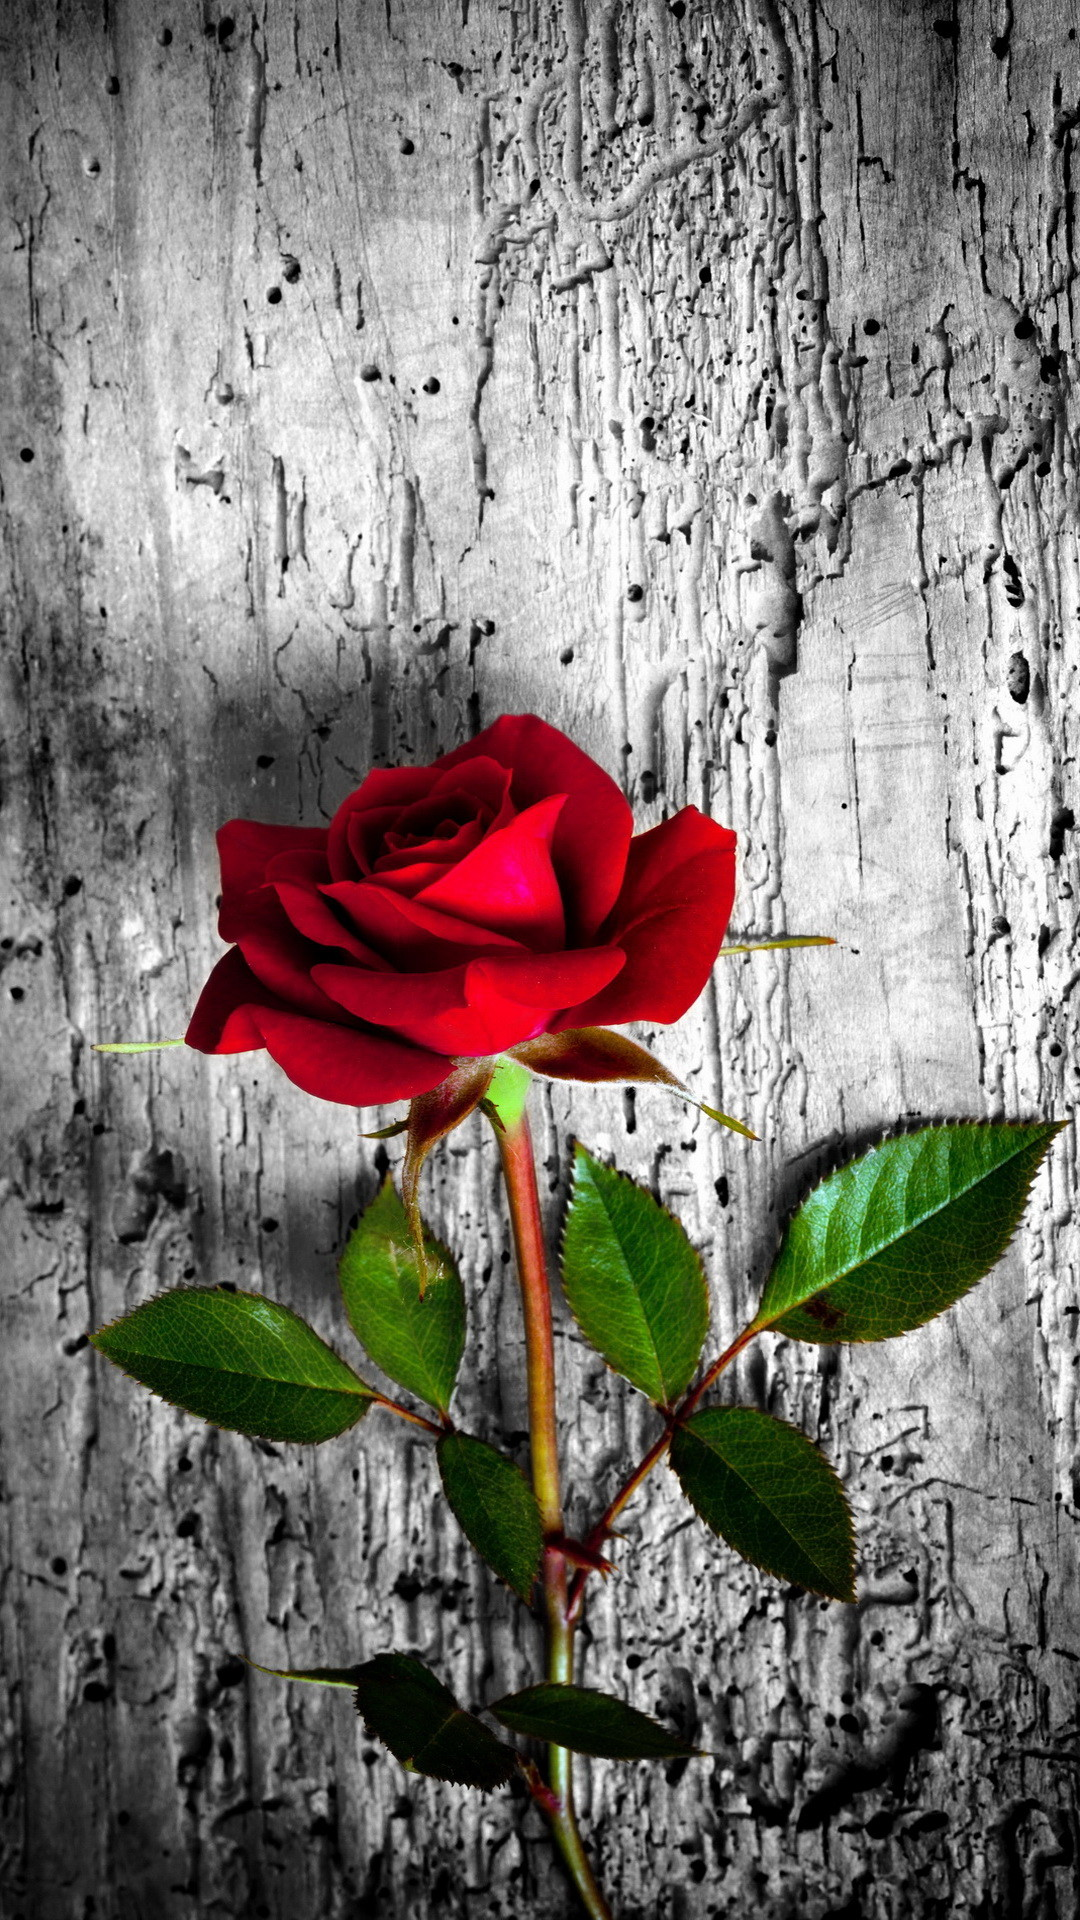 Red rose. 26 Happy Valentine's Day Roses/flowers Wallpapers for iPhone –  @mobile9